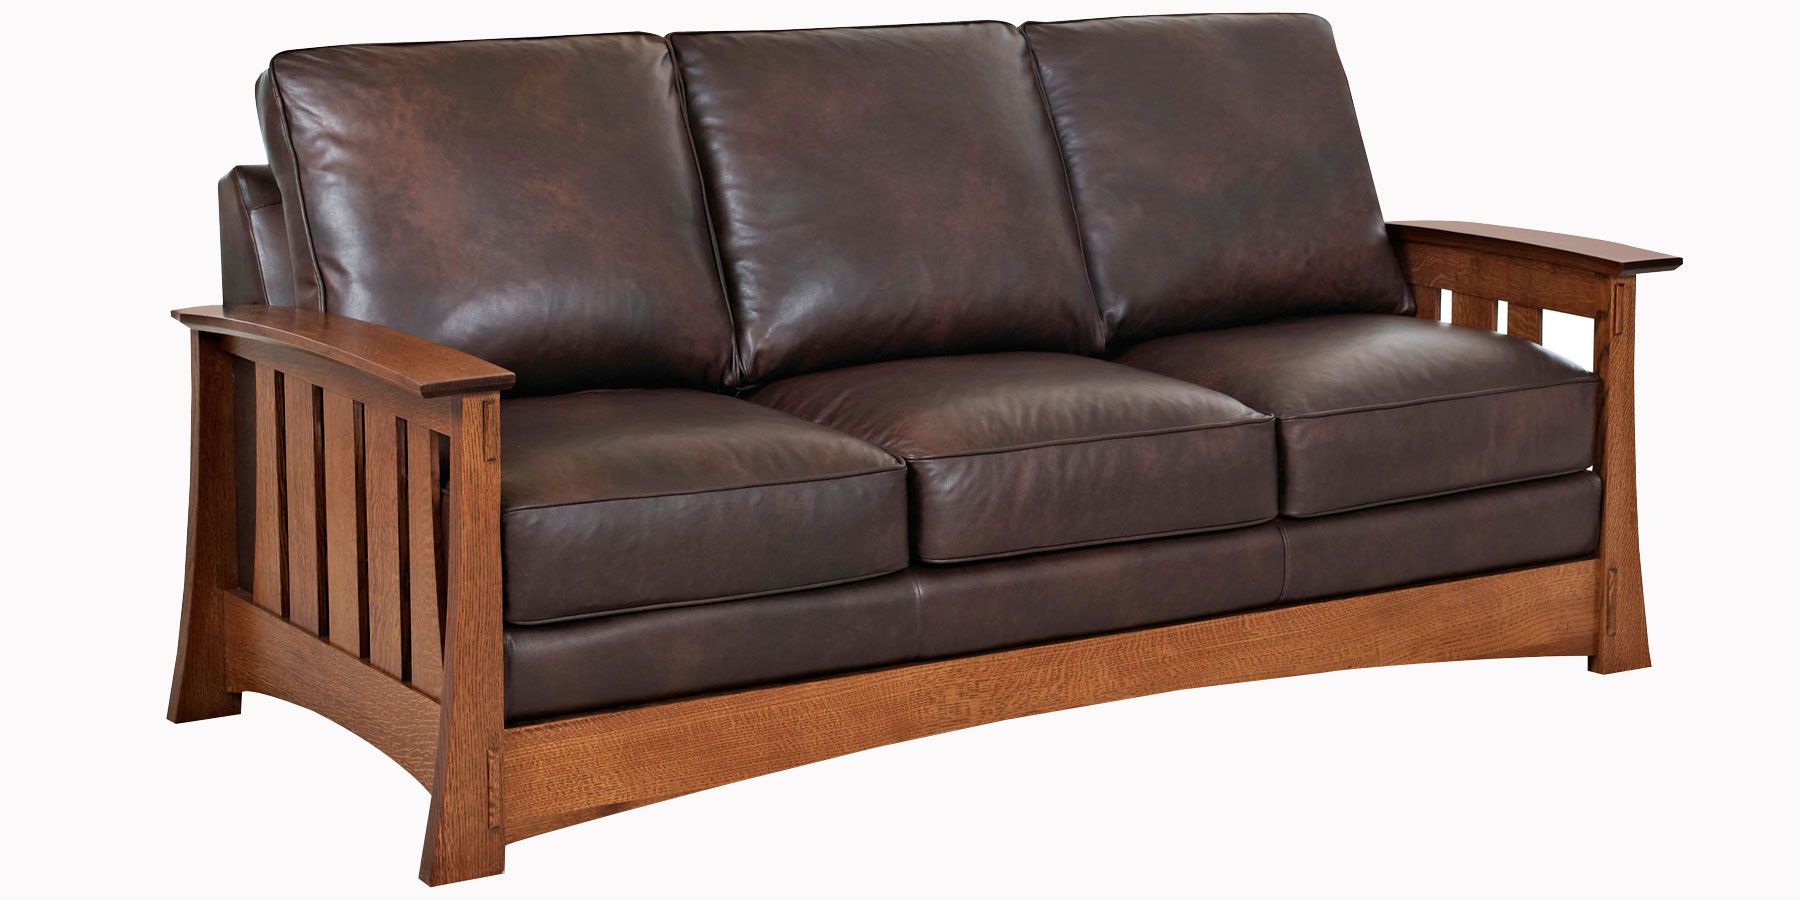 Club Style Couches Room Leather Furniture Stockton Mission Sofa Group